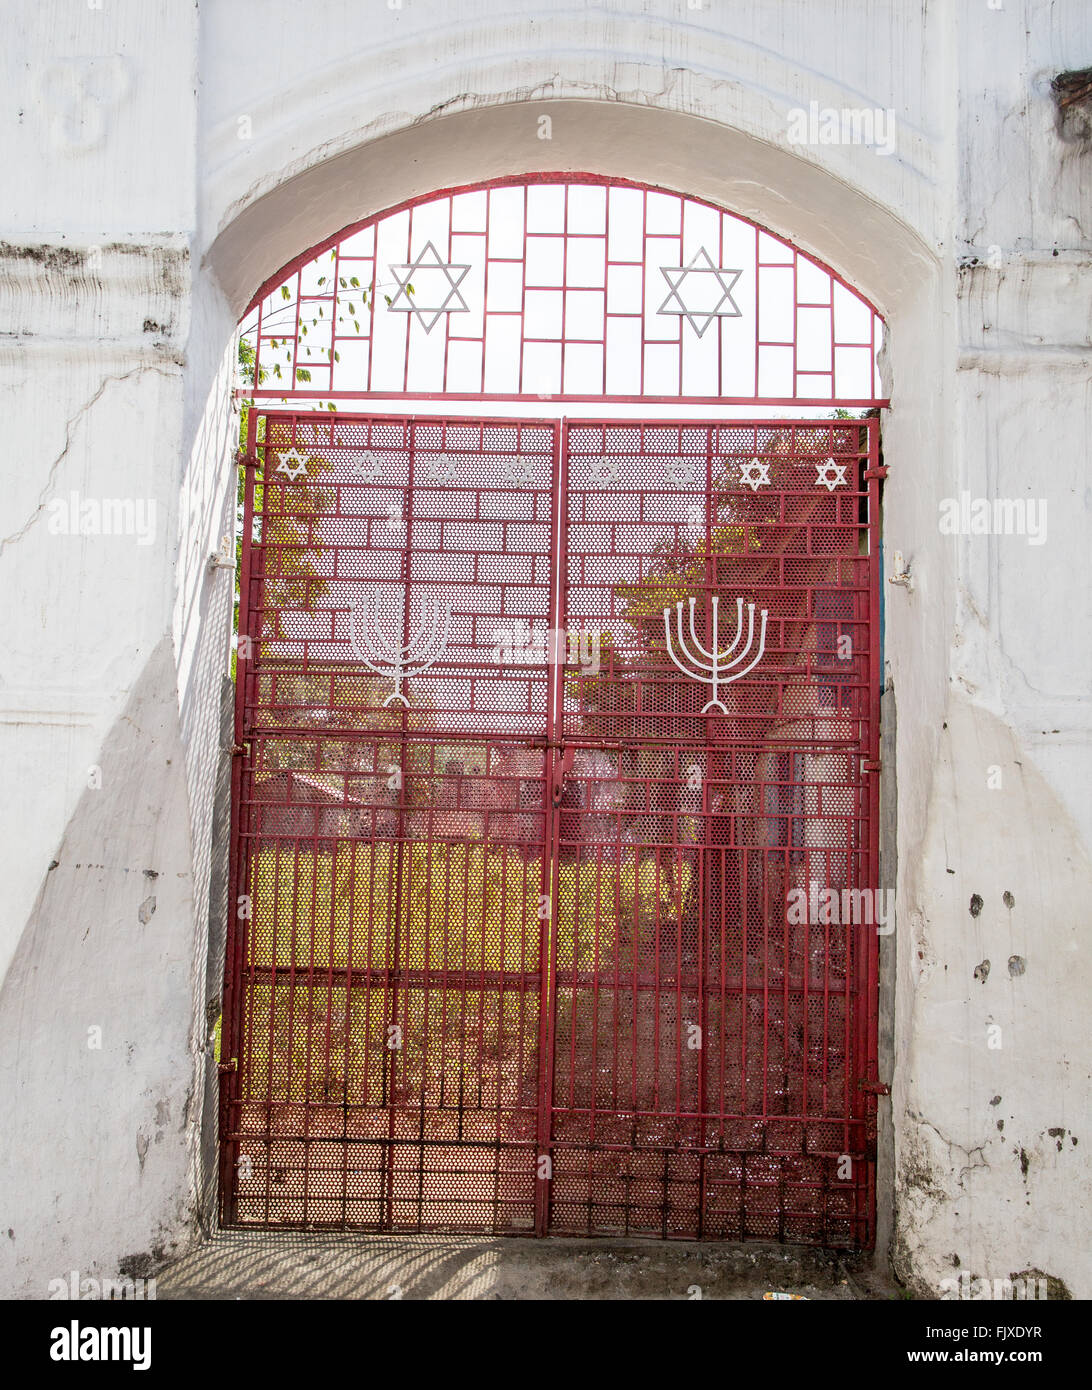 Entrance to The Ancient Jewish Synagogue  In Jew Town Kochi Kerala India - Stock Image